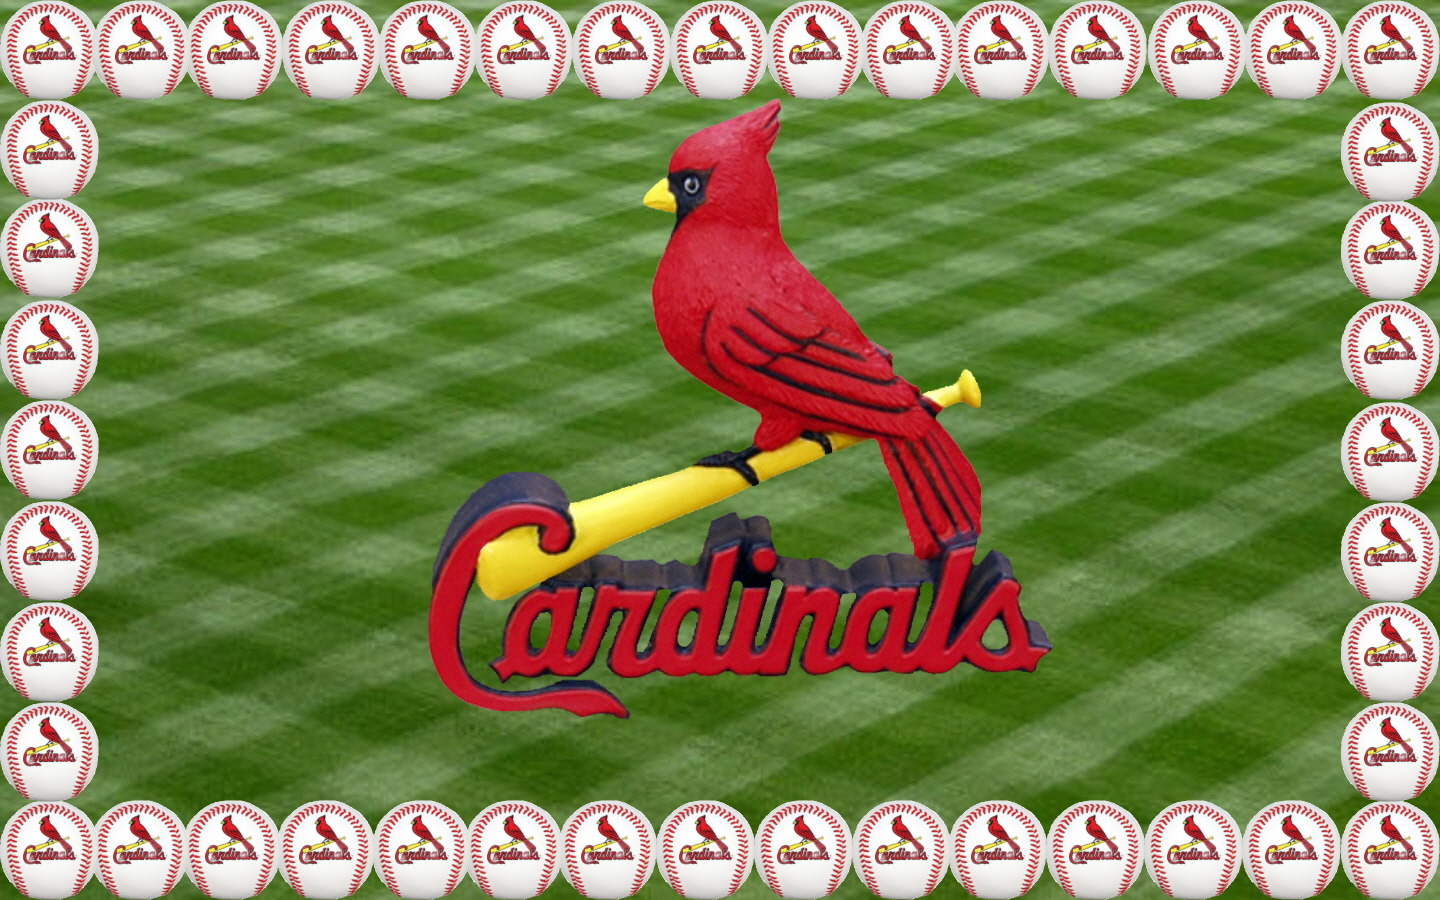 Hd Wallpapers St Louis Cardinals Desktop Wallpaper 1440 x 900 816 1440x900